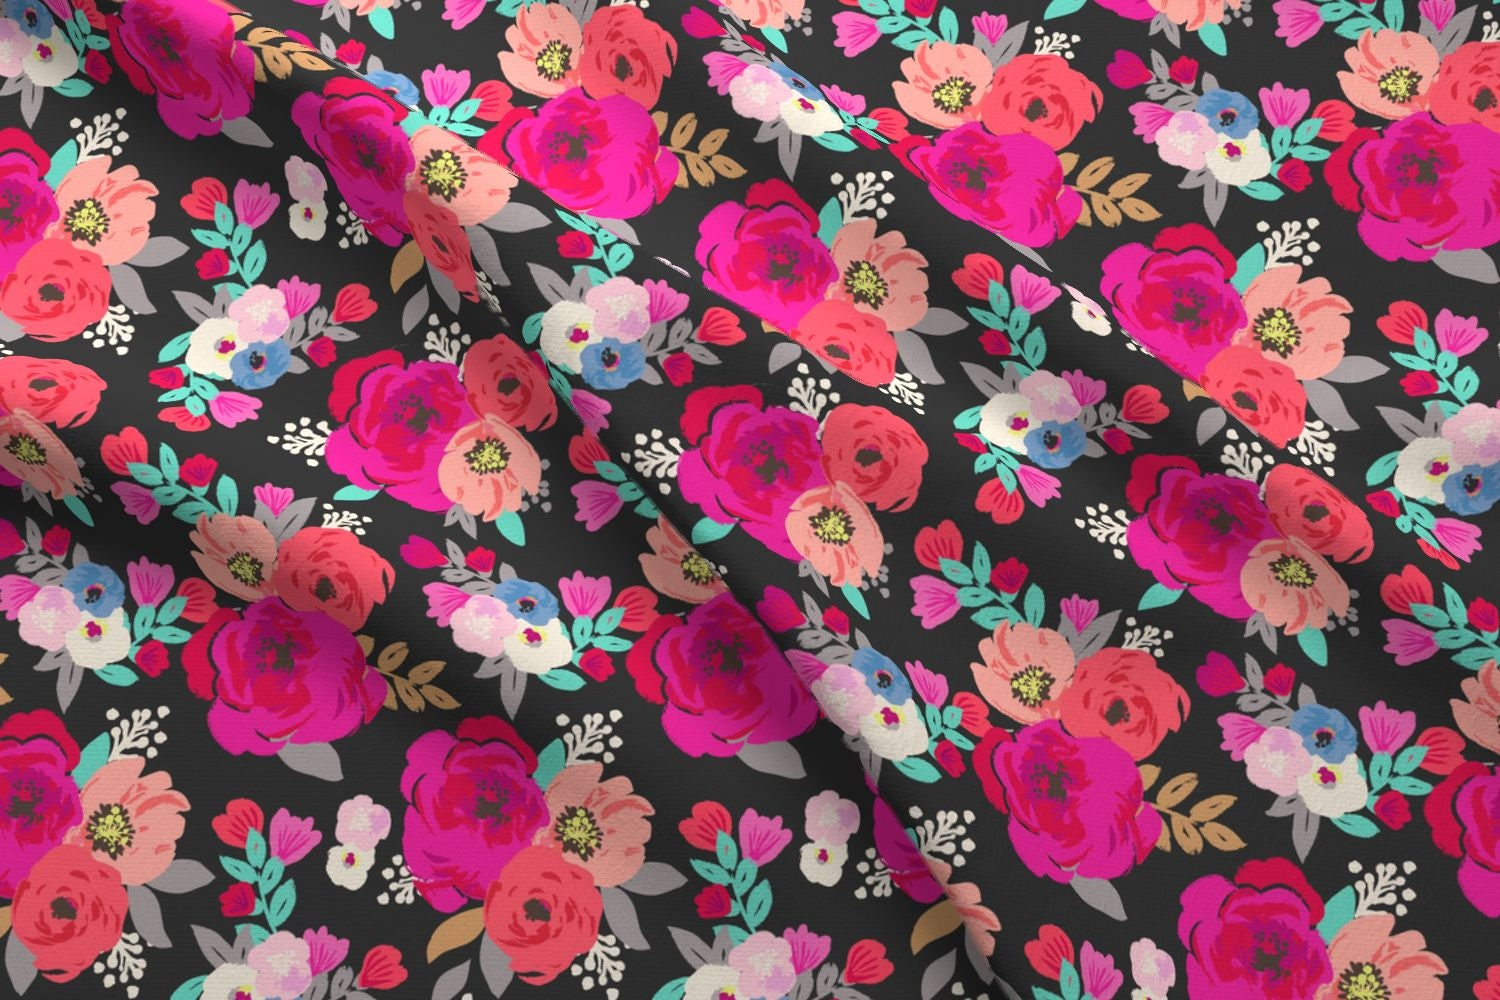 Floral Peony Fabric - Sweet Pea Floral Black By Crystal Walen - Peony  Cotton Fabric By The Yard With Spoonflower from Spoonflower on Etsy Studio